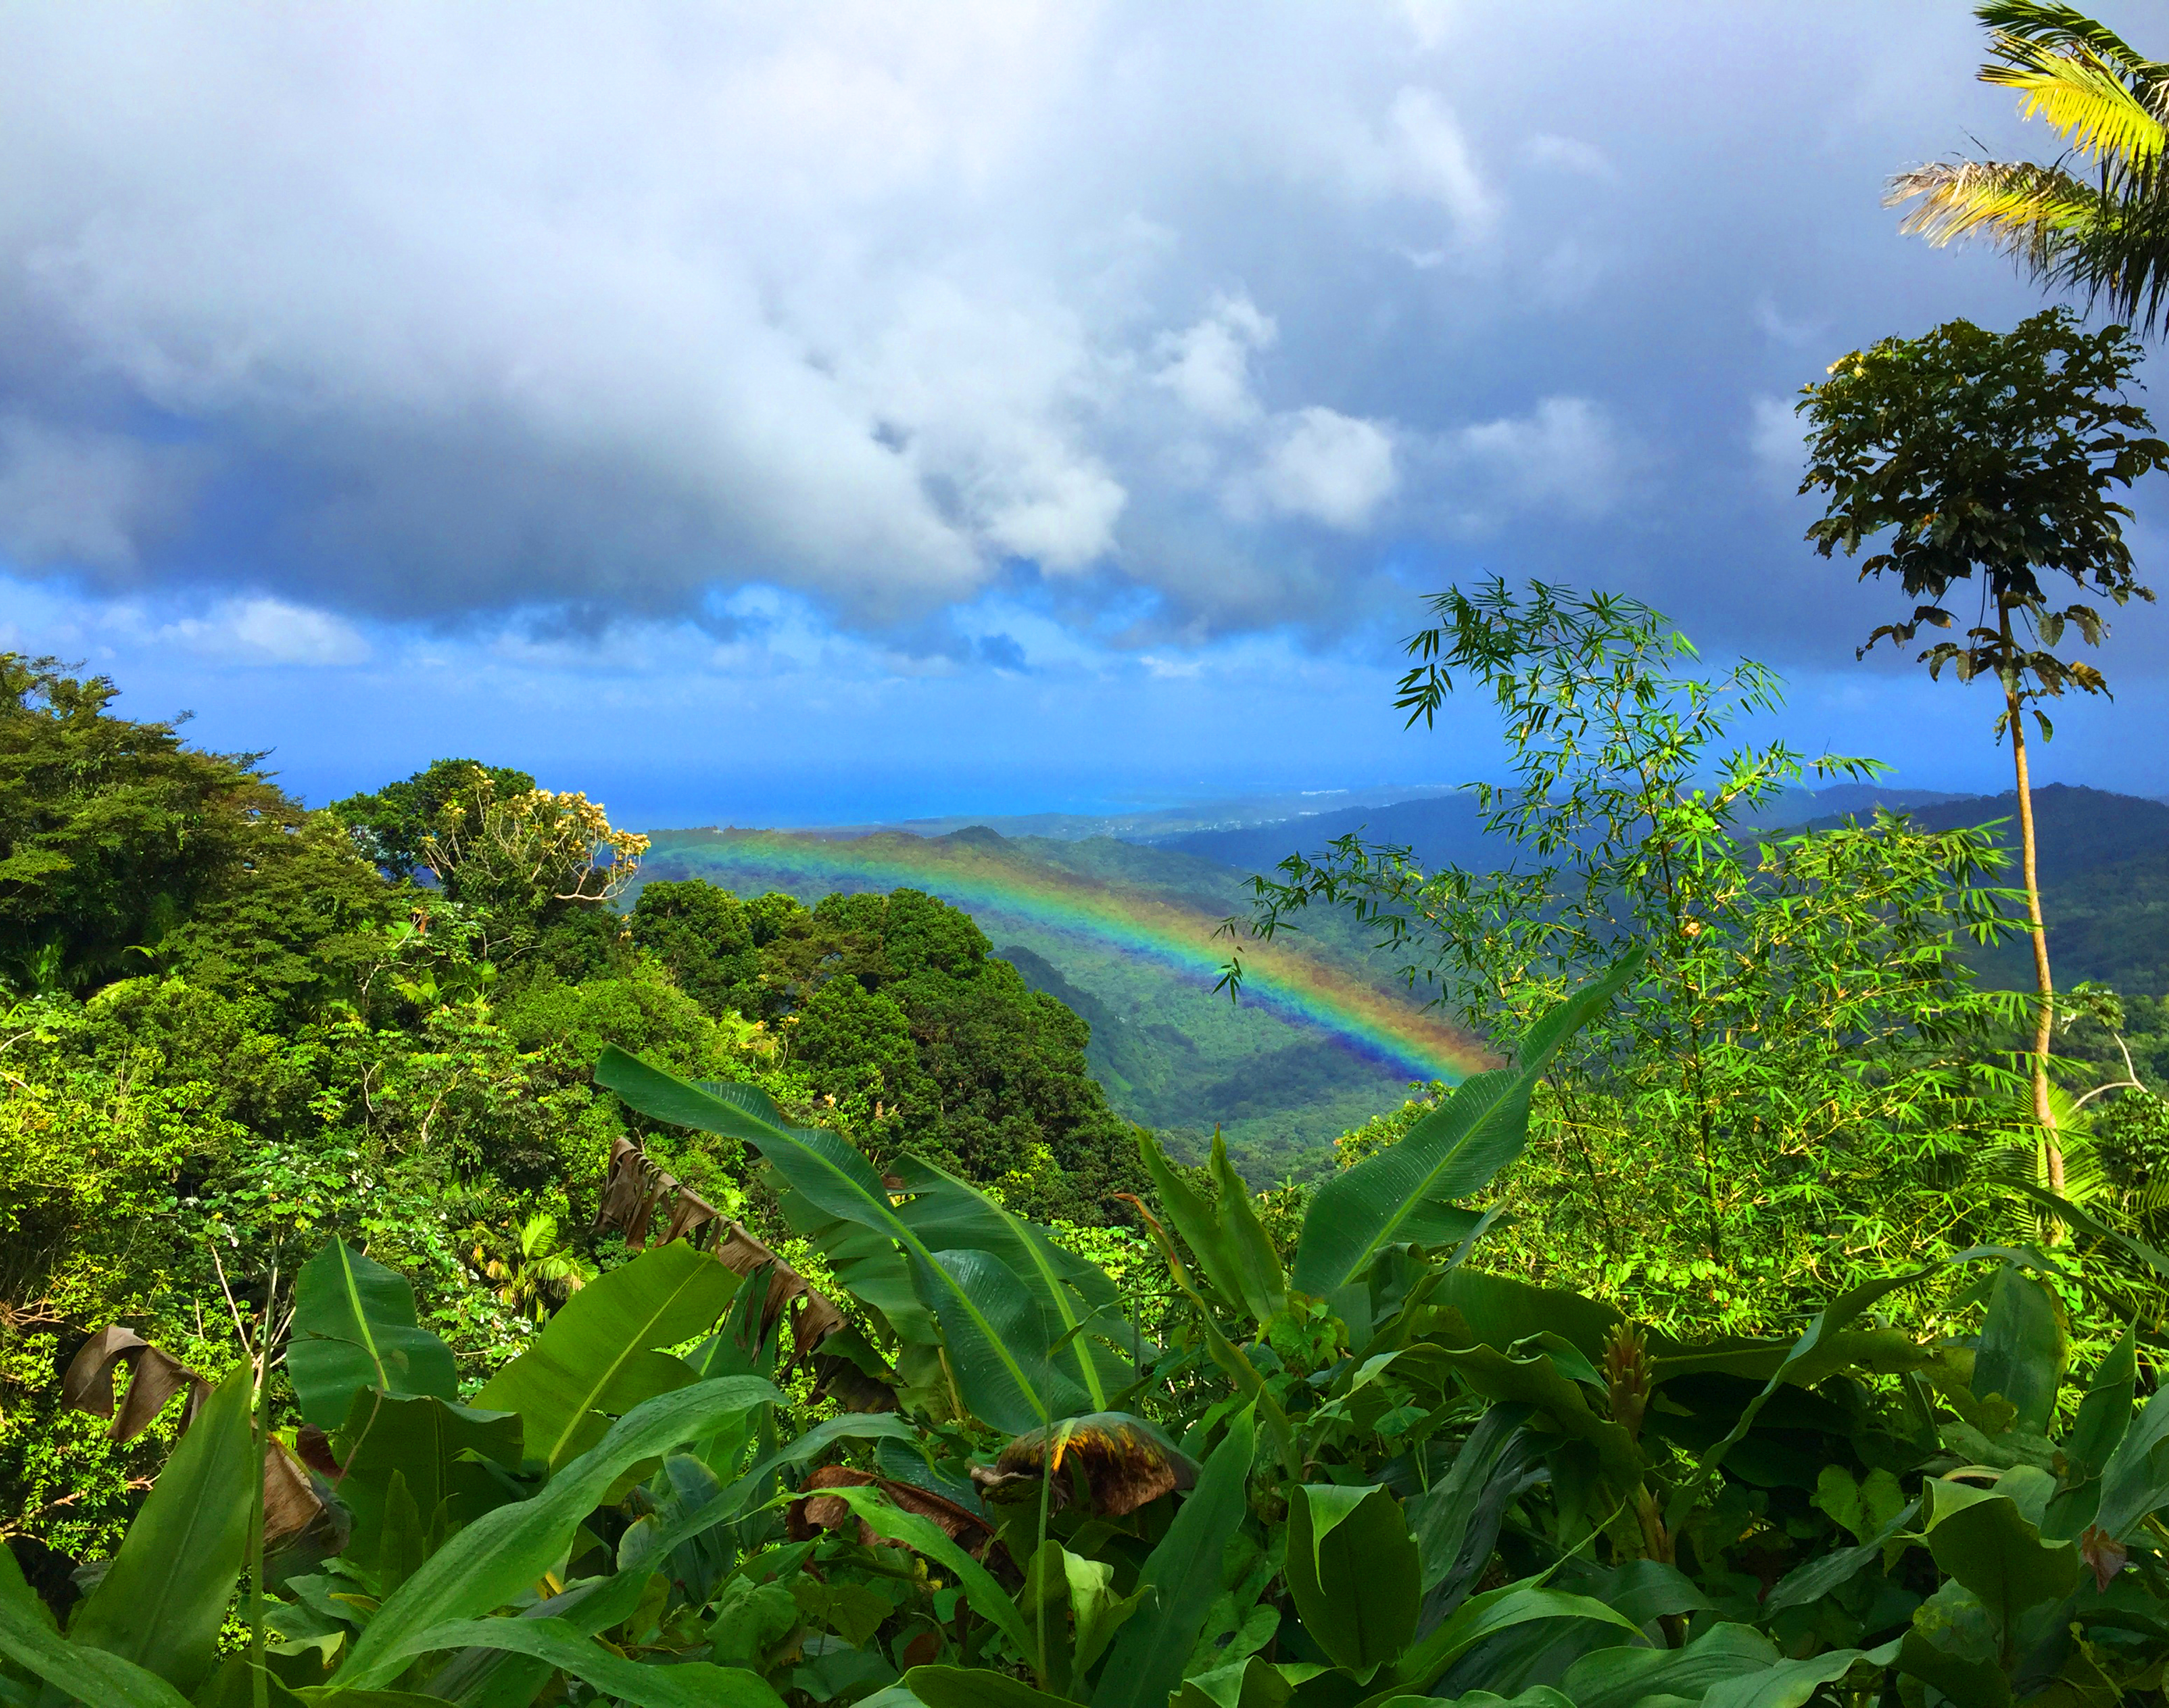 rainbow-original300dpi rainforest Puerto rico photography